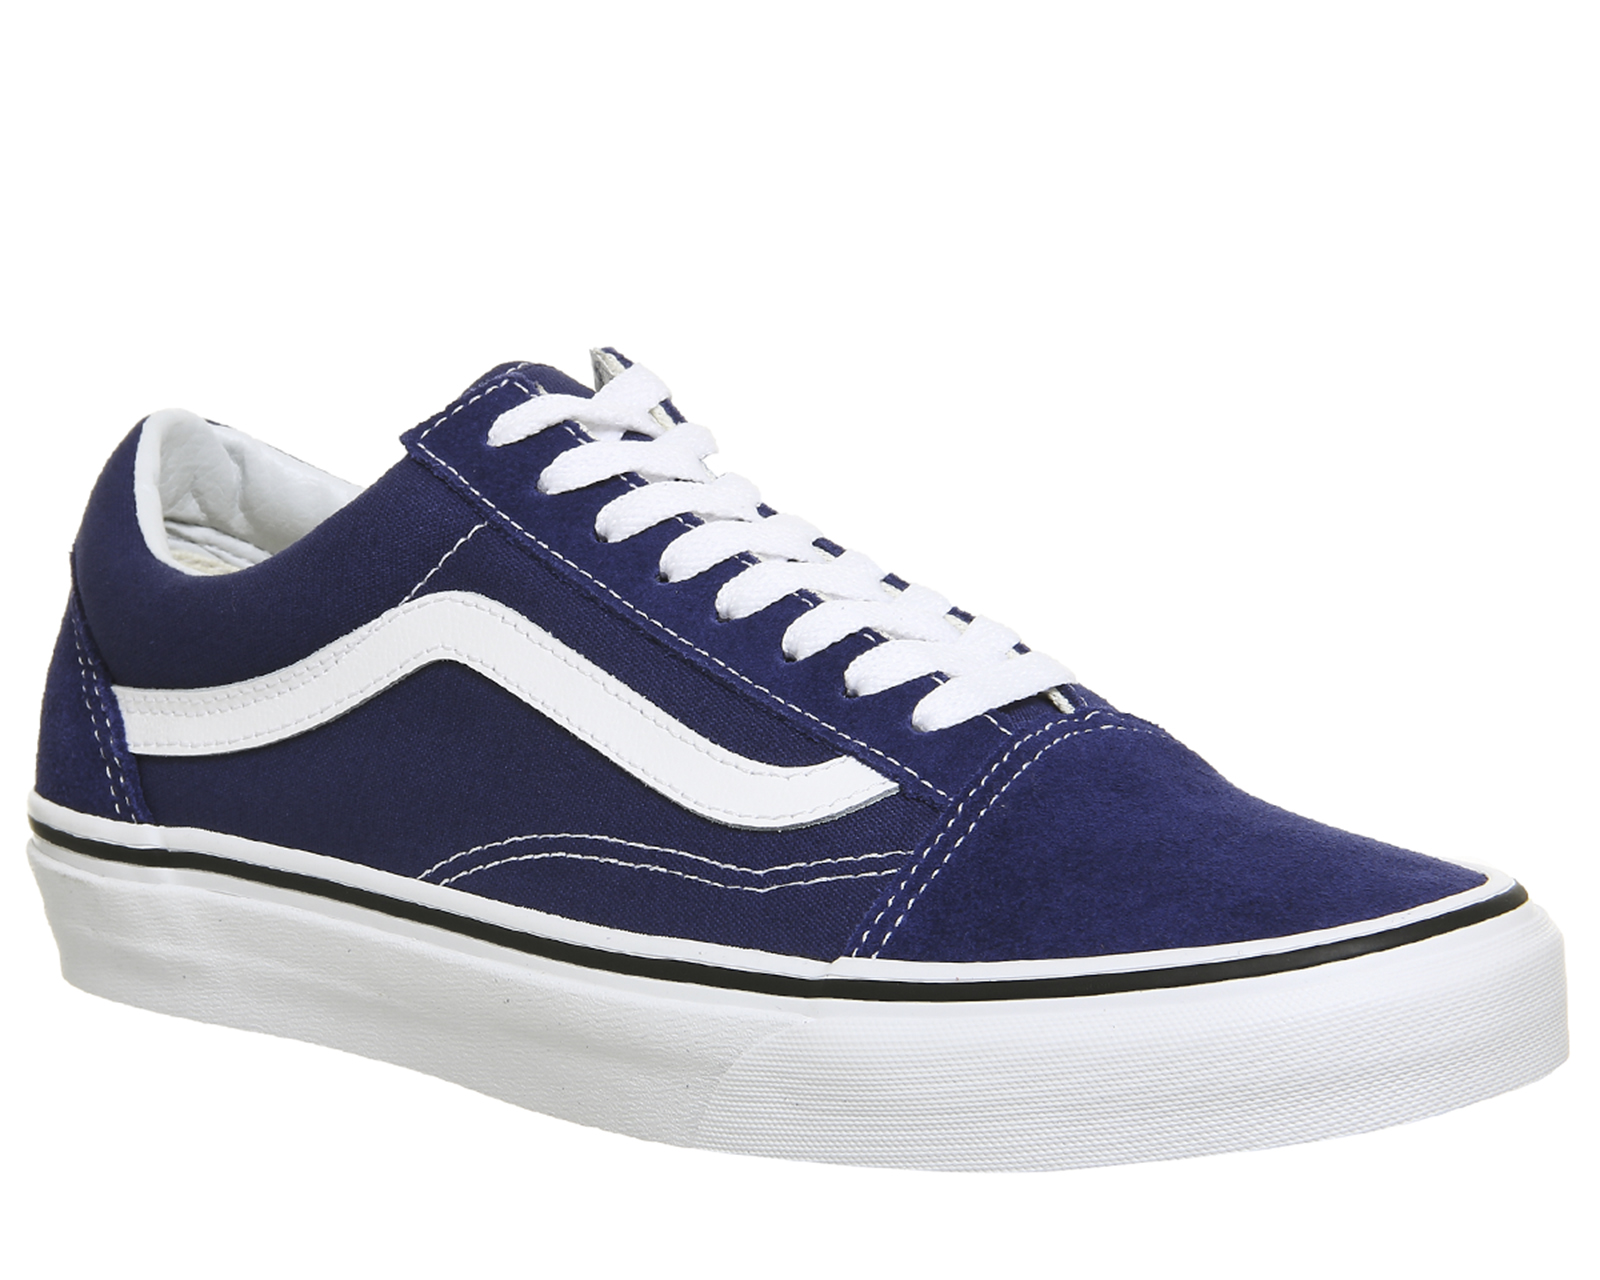 18a7318a62e2 Sentinel Mens Vans Old Skool Trainers ESTATE BLUE TRUE WHITE Trainers Shoes